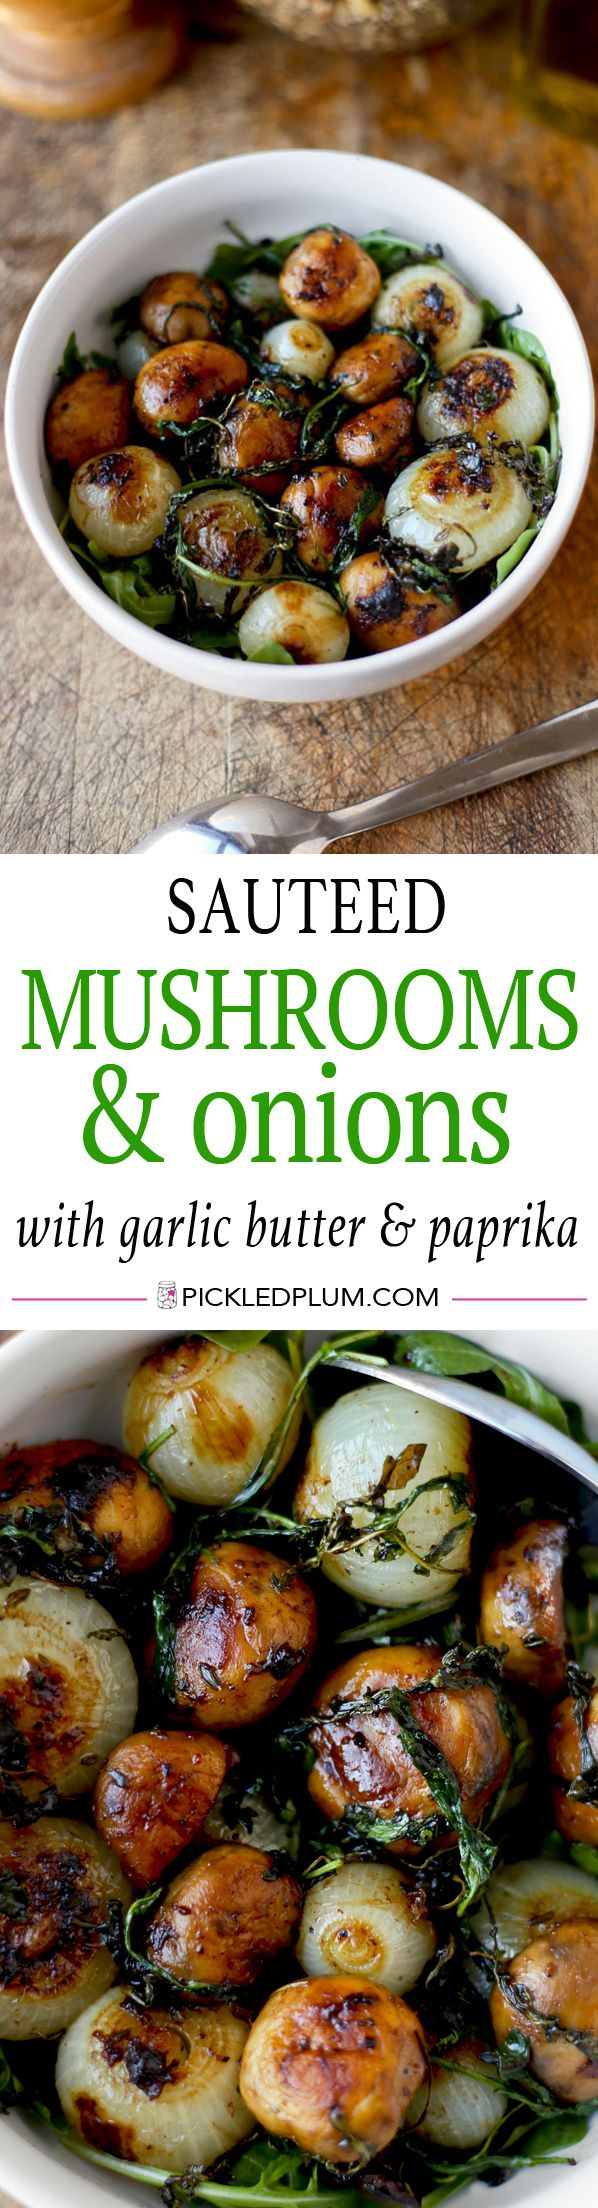 Sauteed Mushrooms and Onions with Garlic Butter and Paprika. This recipe makes a stunning side dish! Sweet pearl onions and earthy mushrooms are pan fried with garlic butter, paprika and salt and finished in the oven. Ah-mazing! Vegetarian, Gluten Free, Easy | pickledplum.com